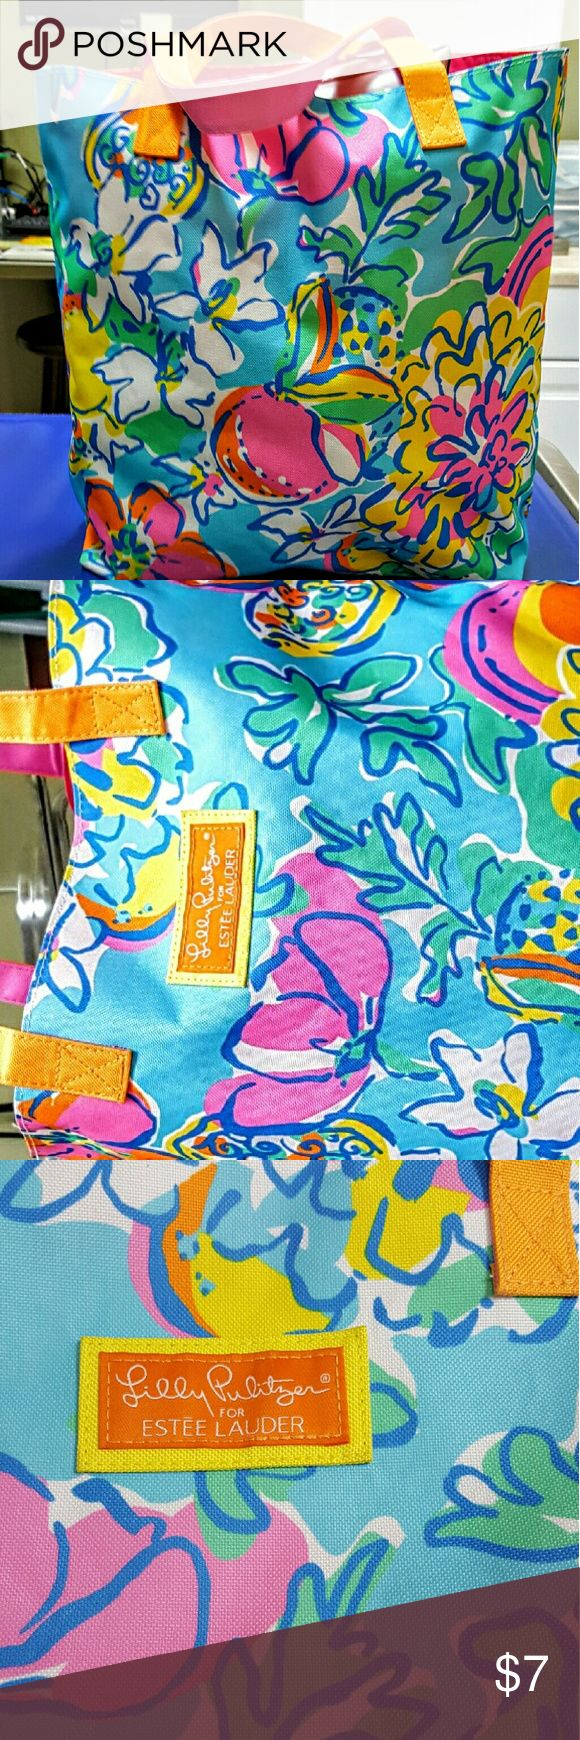 Lilly pulitzer for estee lauder  large beach tote Excellent condition  bright roomy, no marks or  blemishes that i could see. Great for any occasion Lilly Pulitzer Bags Totes